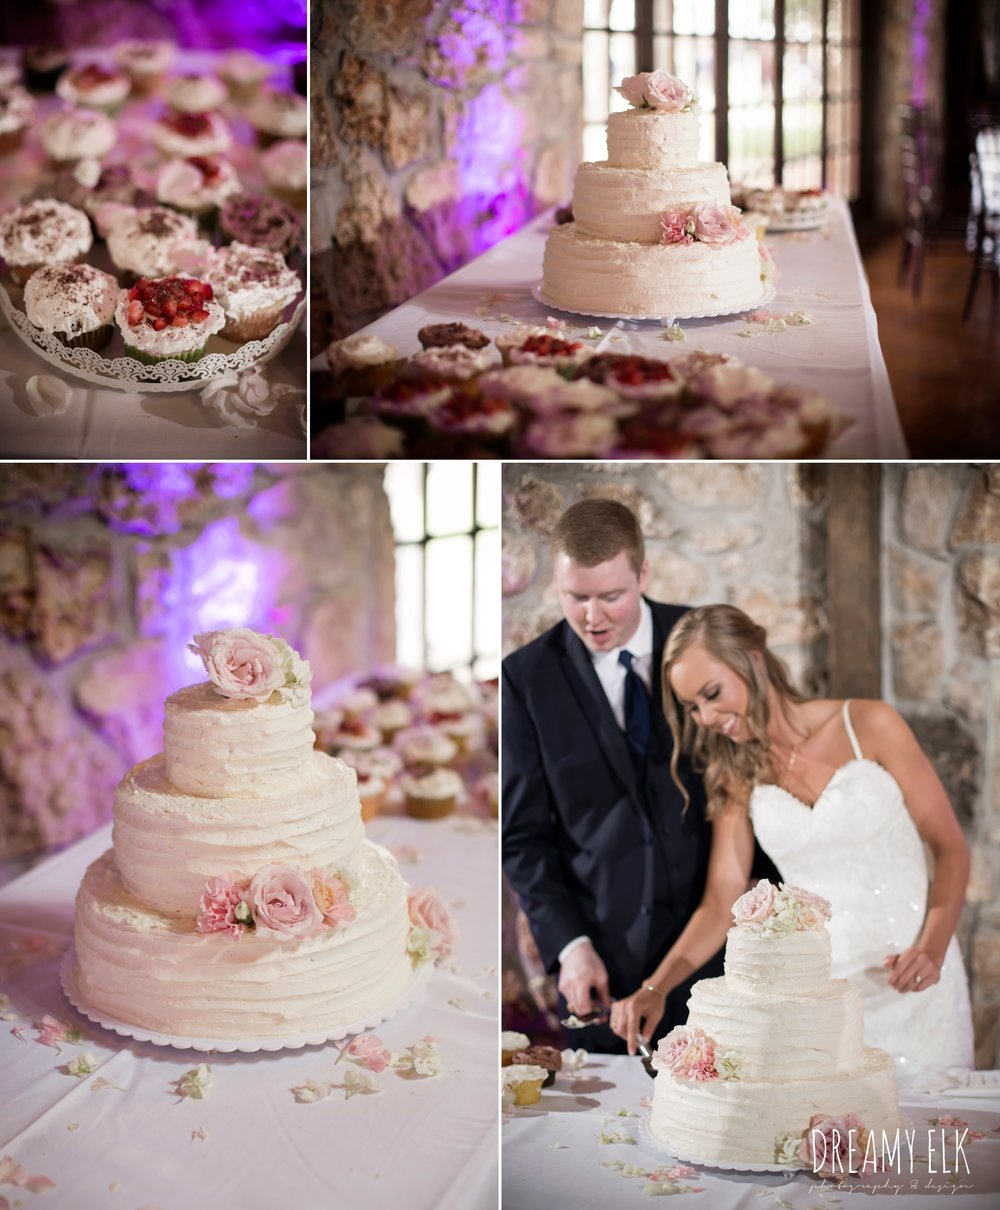 Sweet Secrets Cake Shop, assorted cupcakes and wedding cake, cutting the cake, cloudy march wedding photo, canyon springs golf club wedding, san antonio, texas {dreamy elk photography and design}